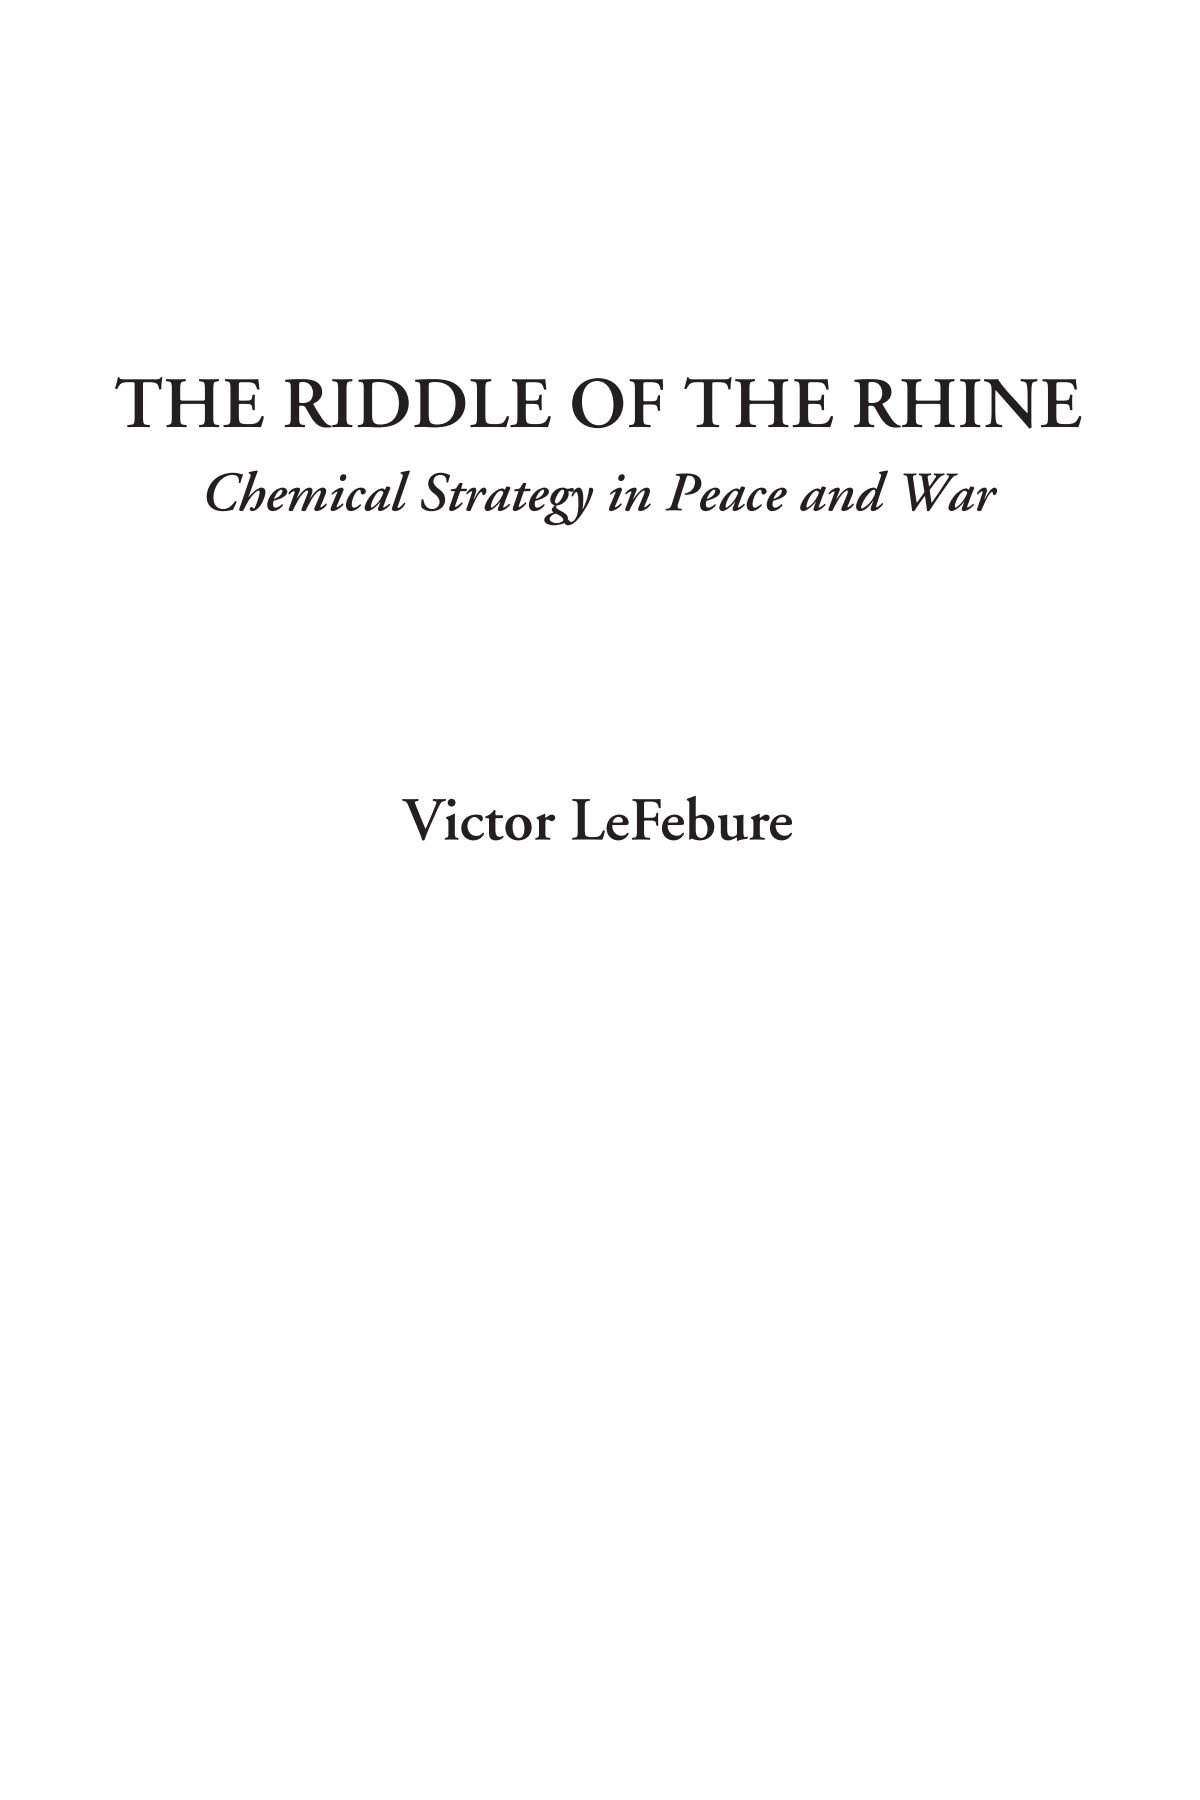 The Riddle of the Rhine (Chemical Strategy in Peace and War) pdf